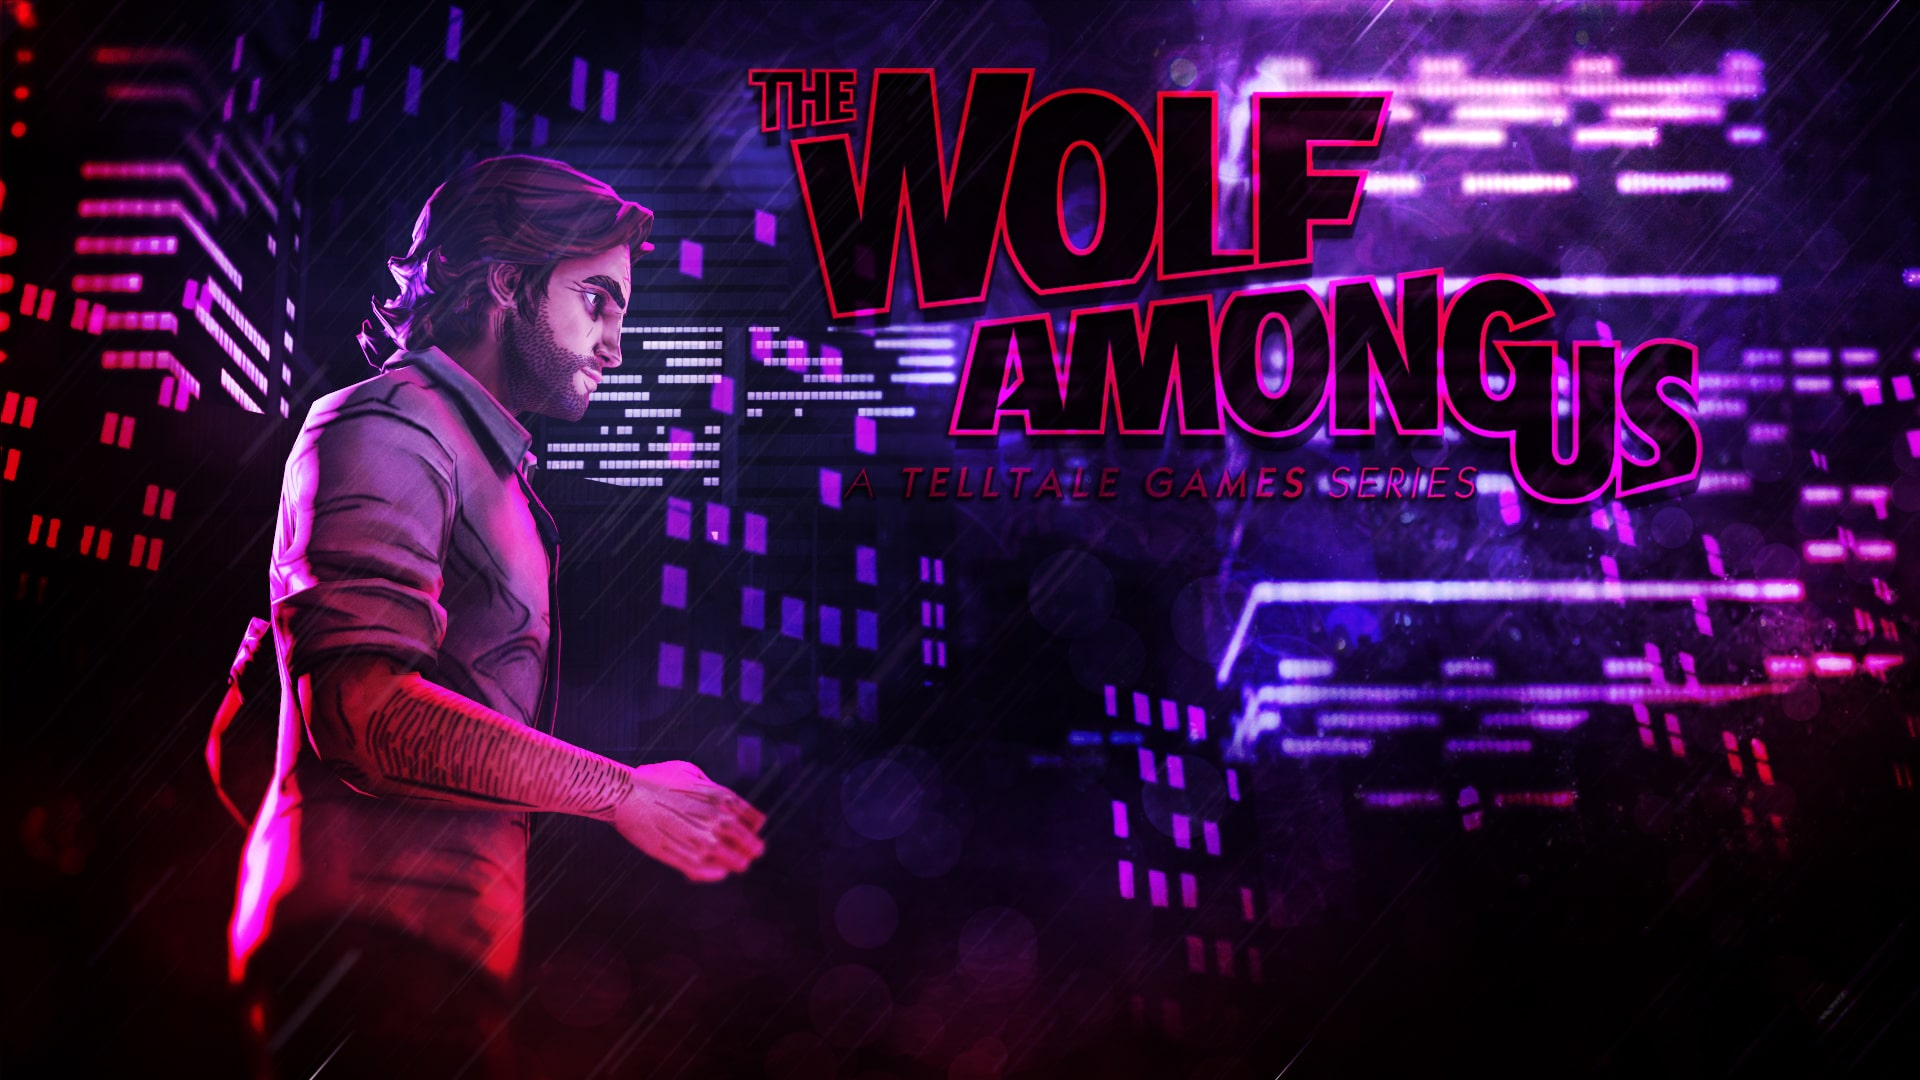 The Wolf Among Us Wallpaper Desktop Kolpaper Awesome Free Hd Wallpapers